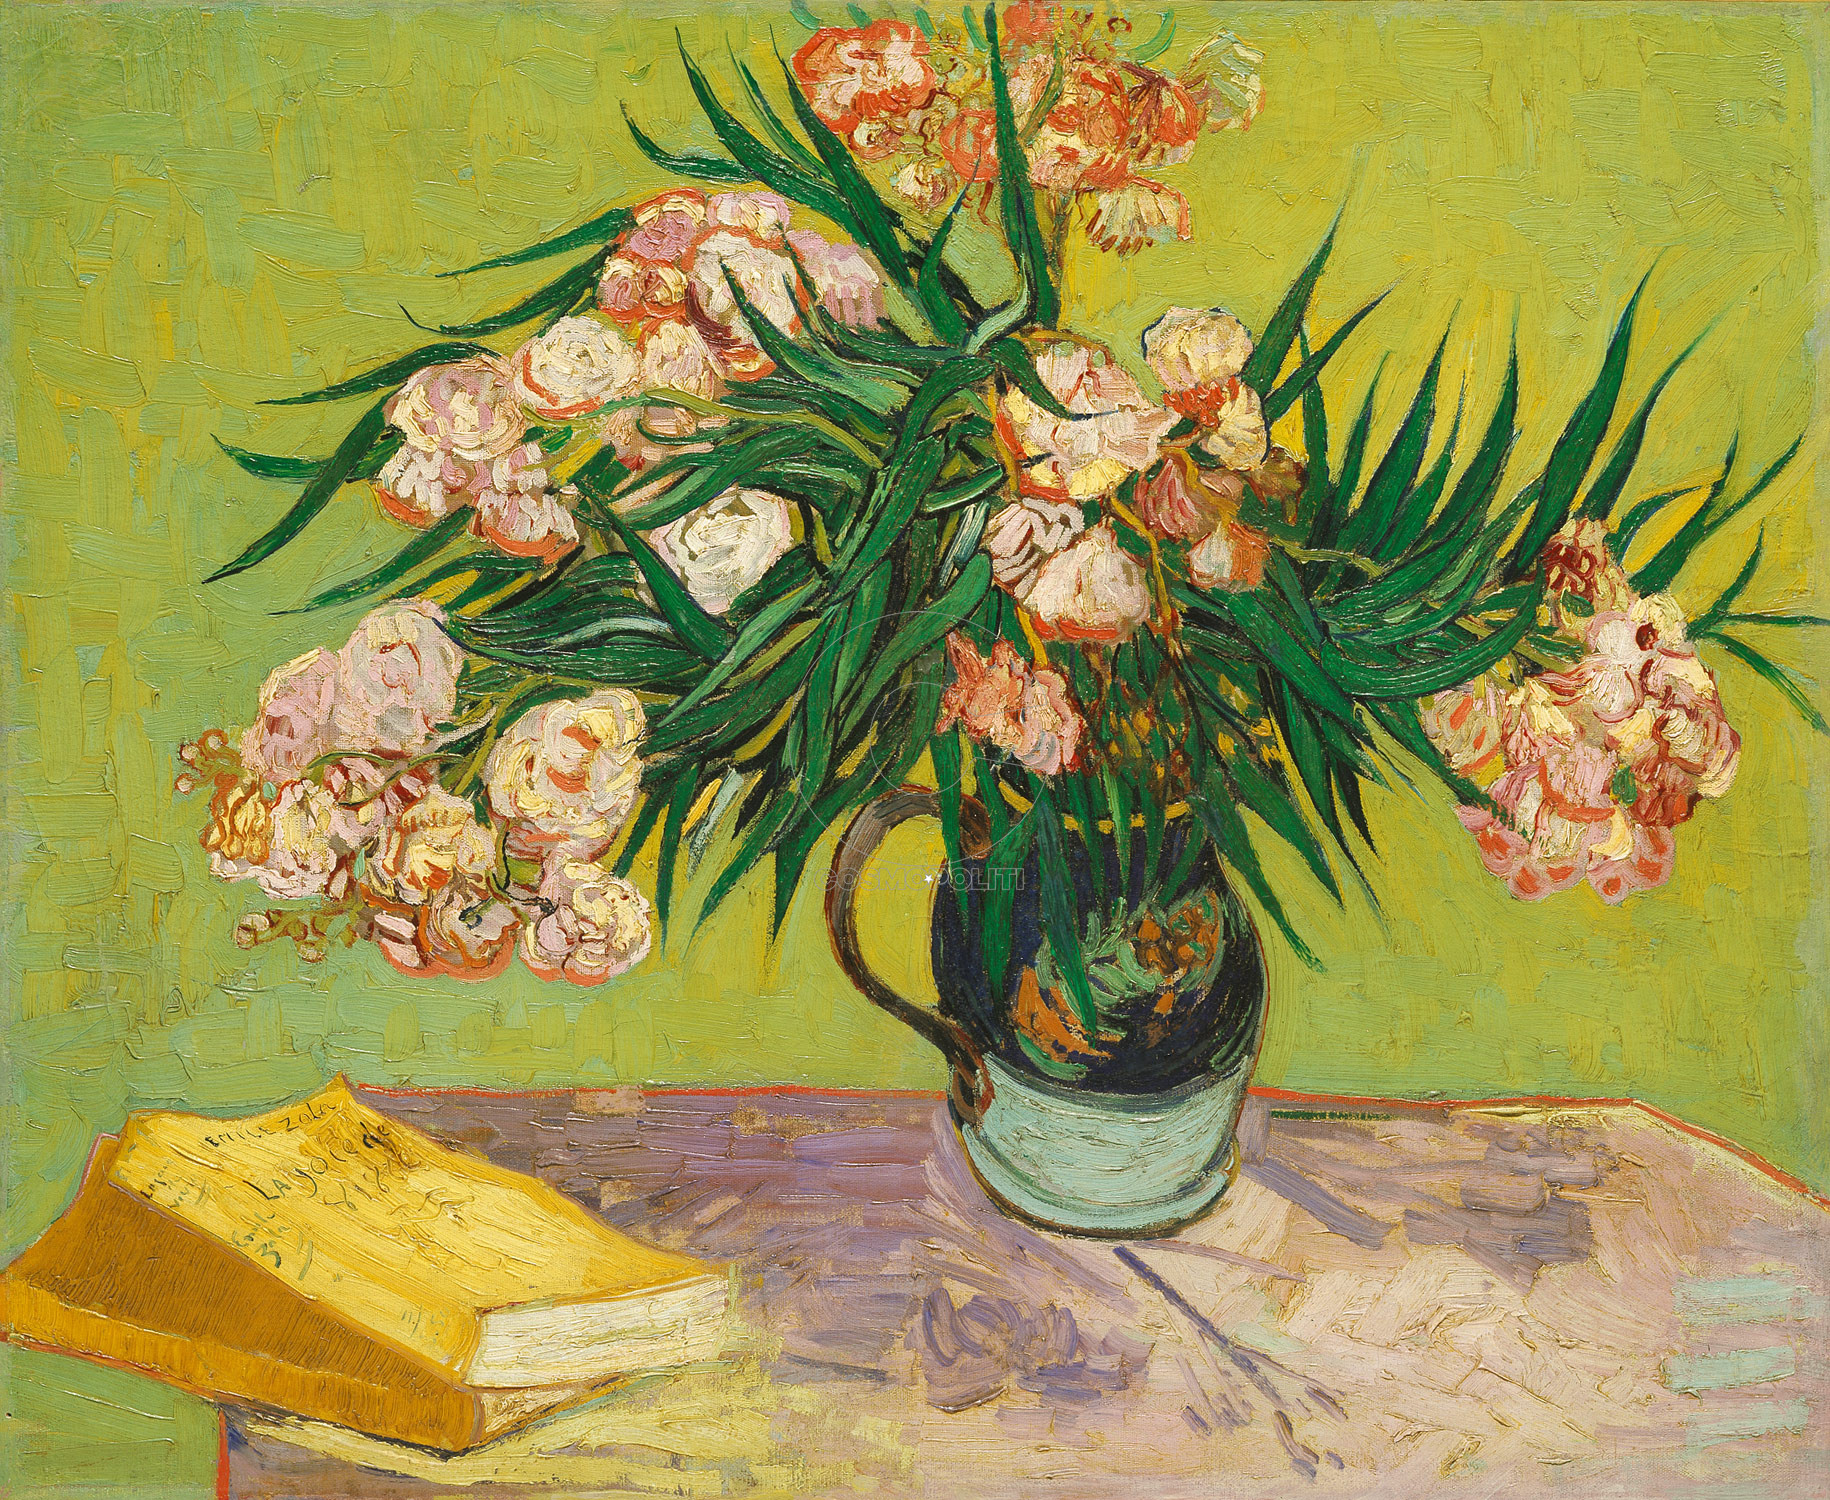 Working Title/Artist: Oleanders Department: European Paintings Culture/Period/Location: HB/TOA Date Code: Working Date: 1888 photographed by mma in 1997, transparency 4a scanned by film & media 9/18/04 (phc)